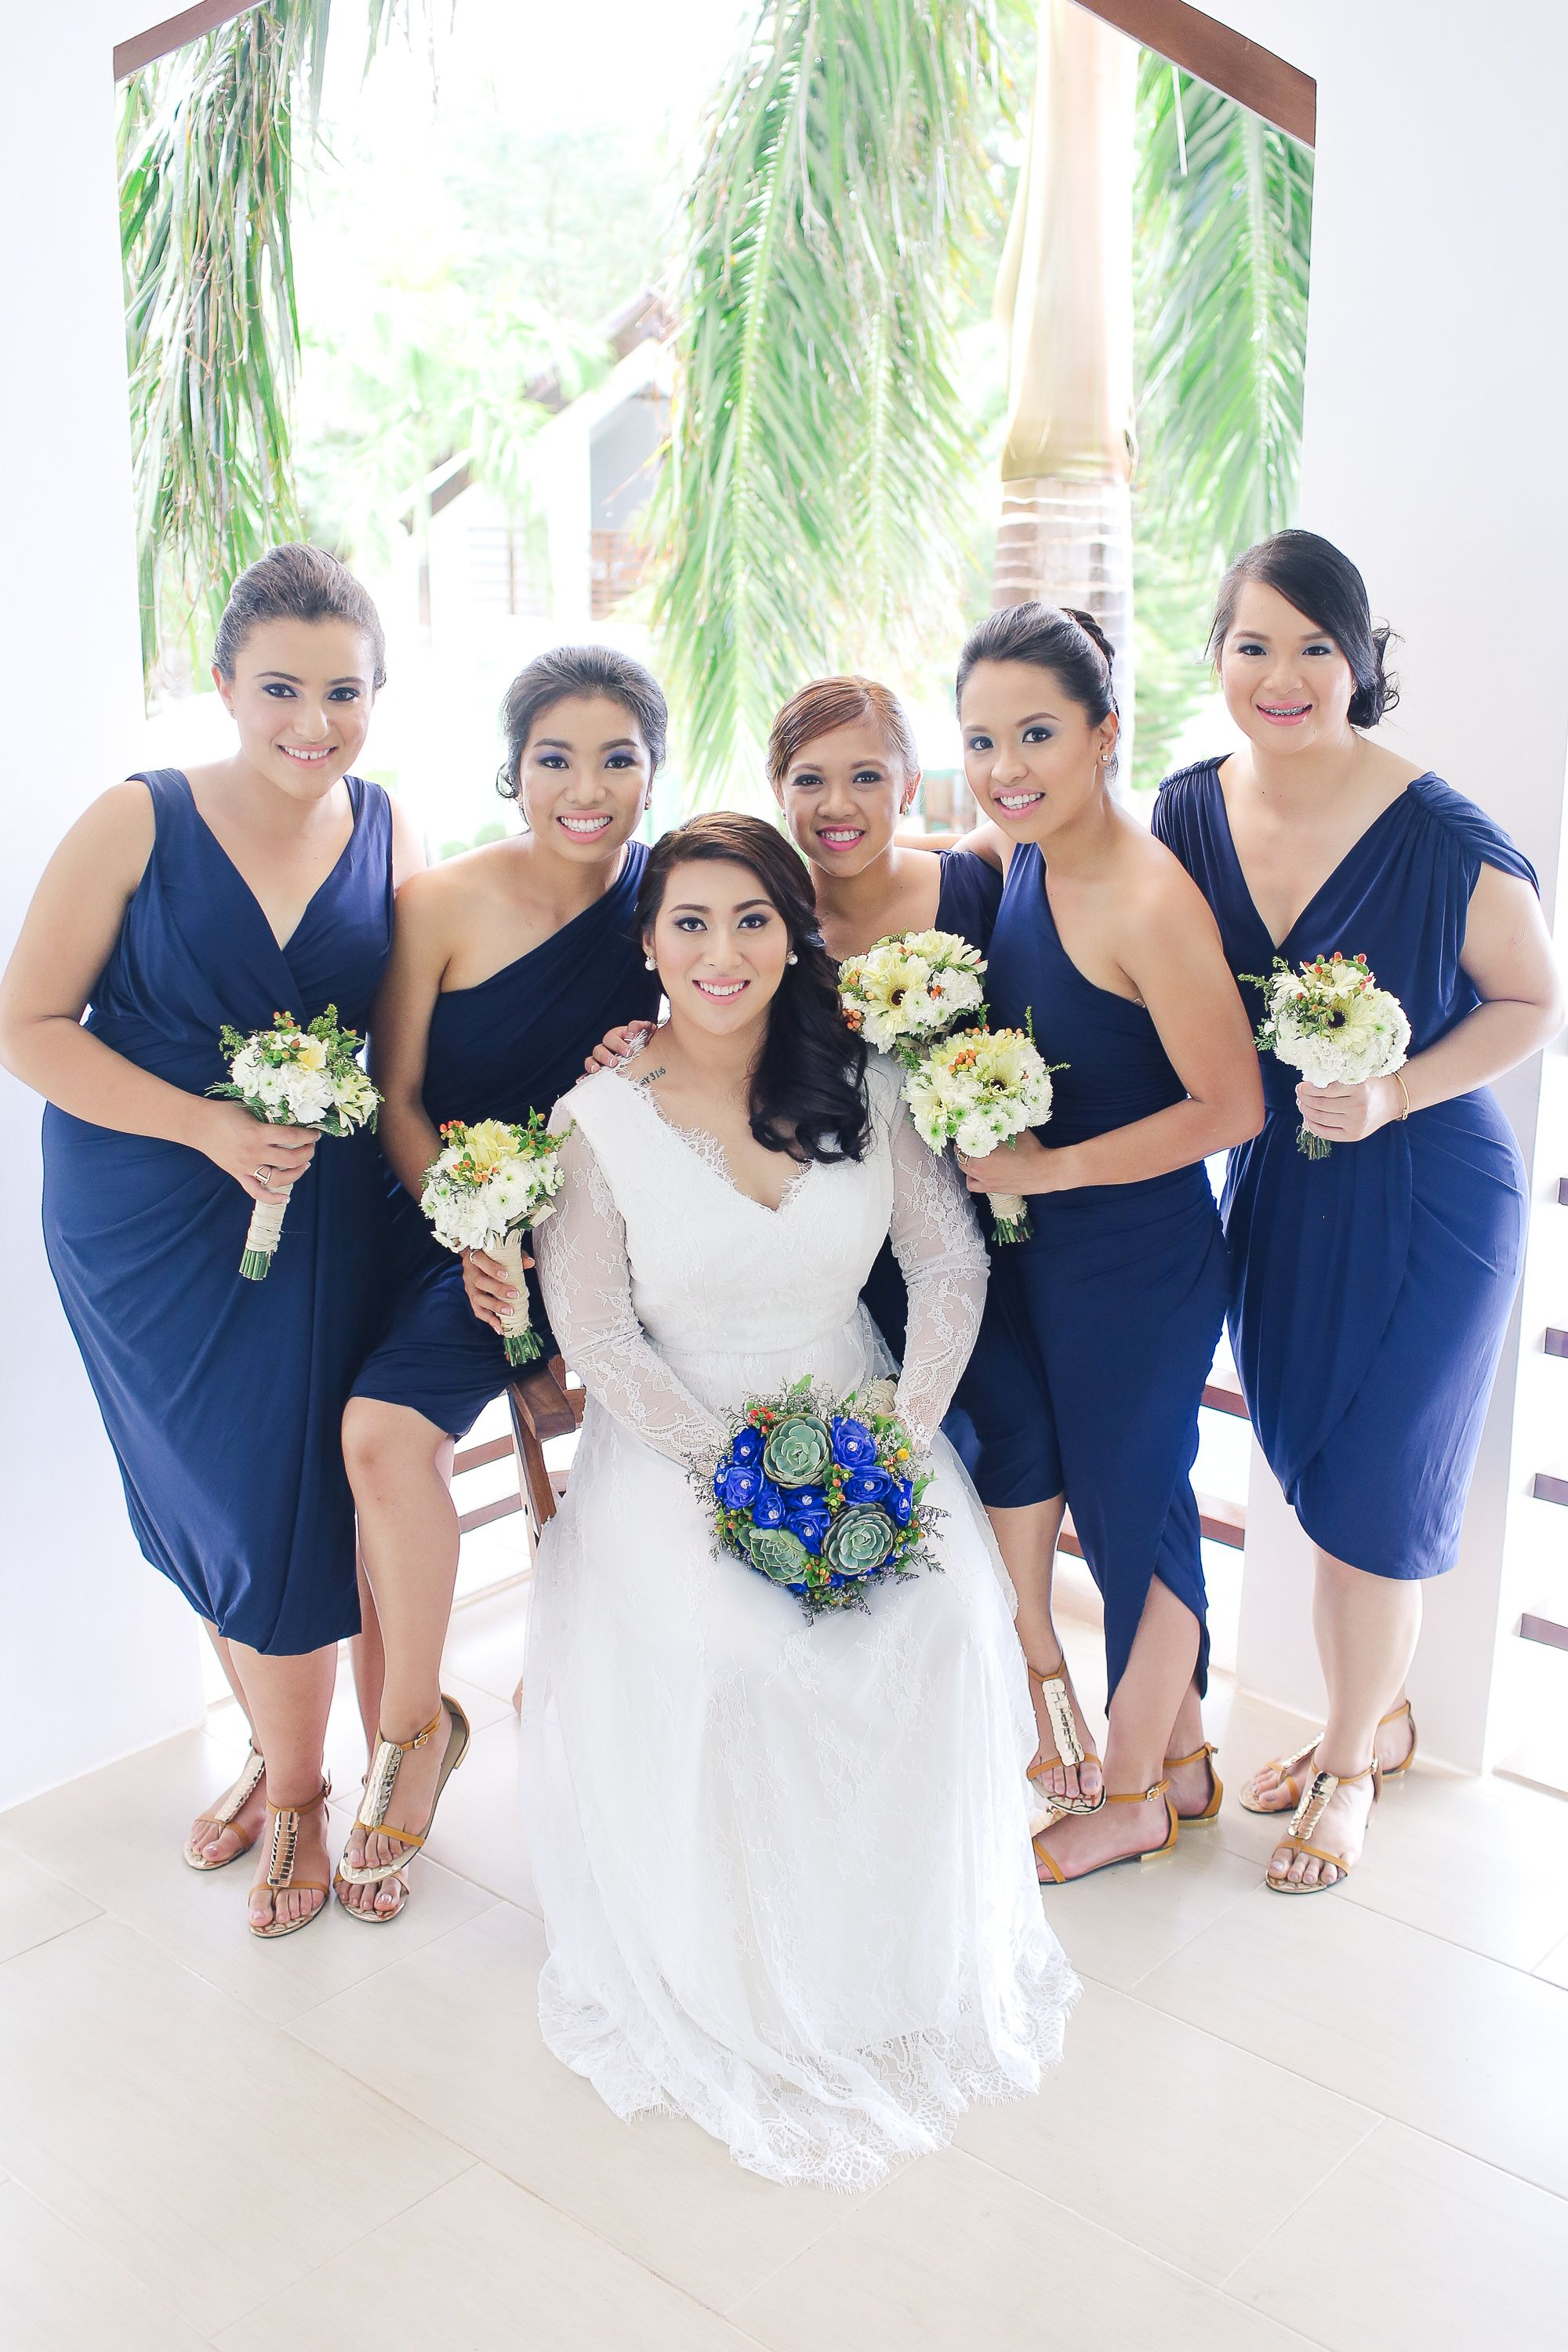 Bridesmaid dress for beach wedding  navy bridesmaid dress Pia Gladys Perey Acuatico beach wedding